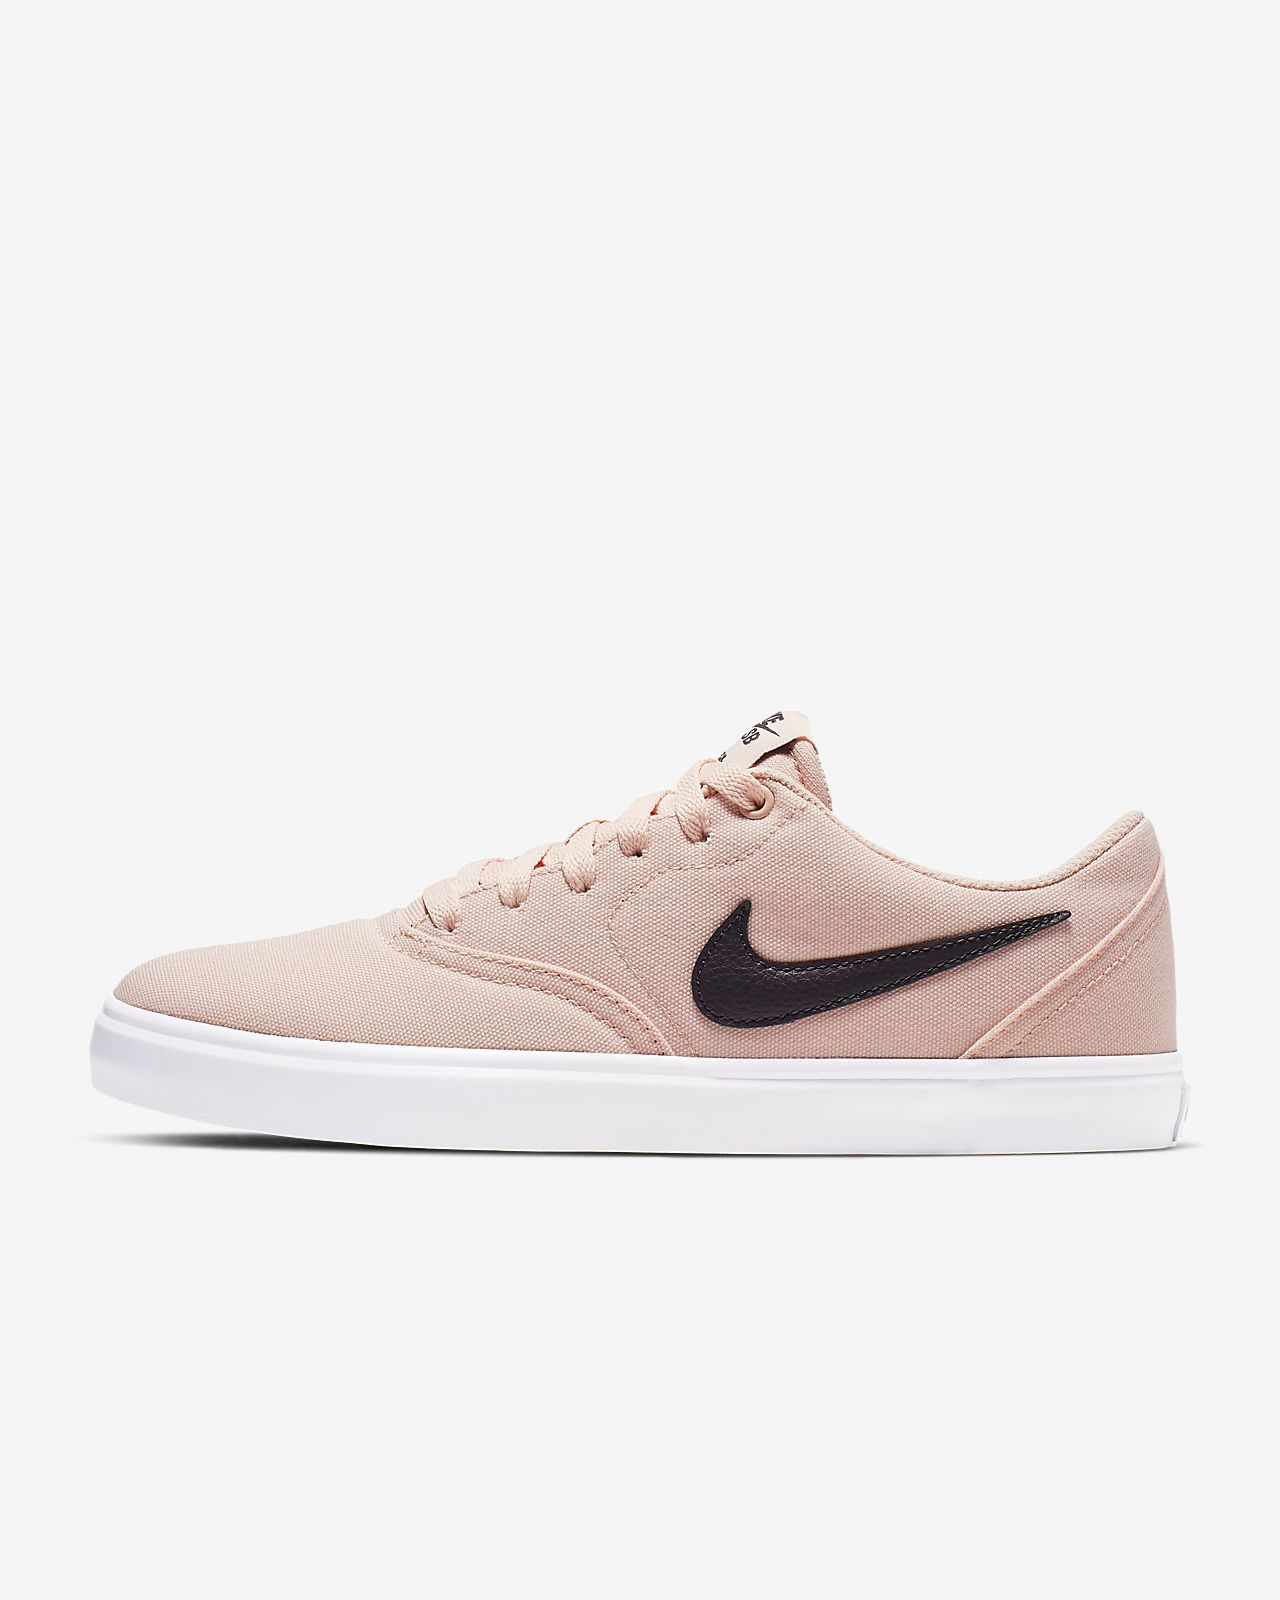 ShoeId Check Canvas Skateboarding Nike Solarsoft Sb Women's eYbWE9ID2H